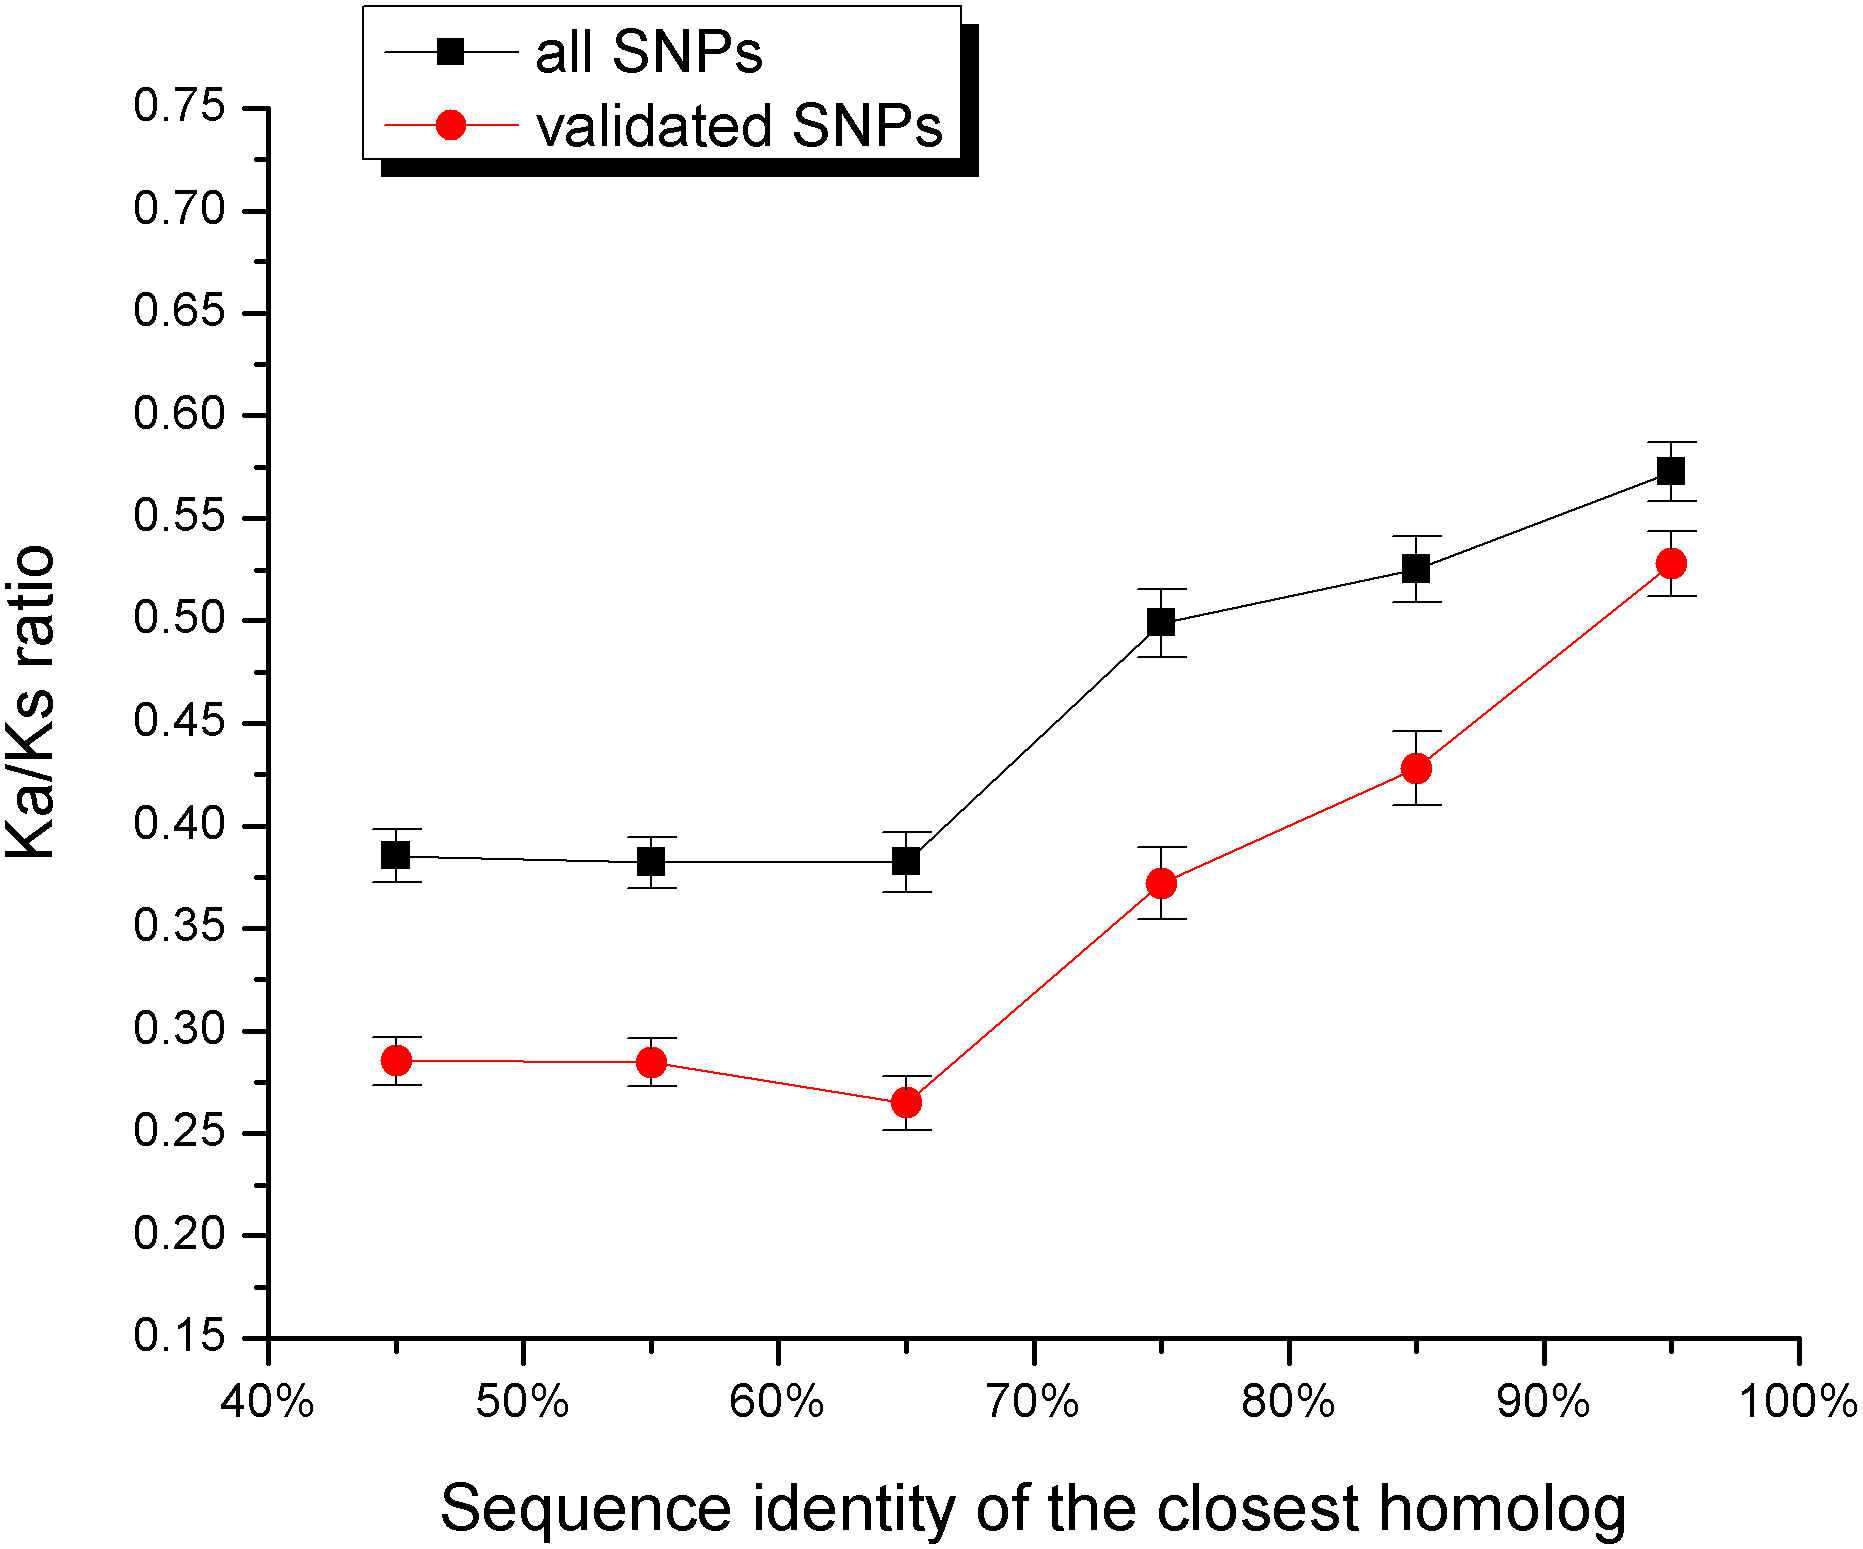 The relationship between the sequence identity of the closest homolog and the ratio of non-synonymous to synonymous human SNPs per site (Ka/Ks).